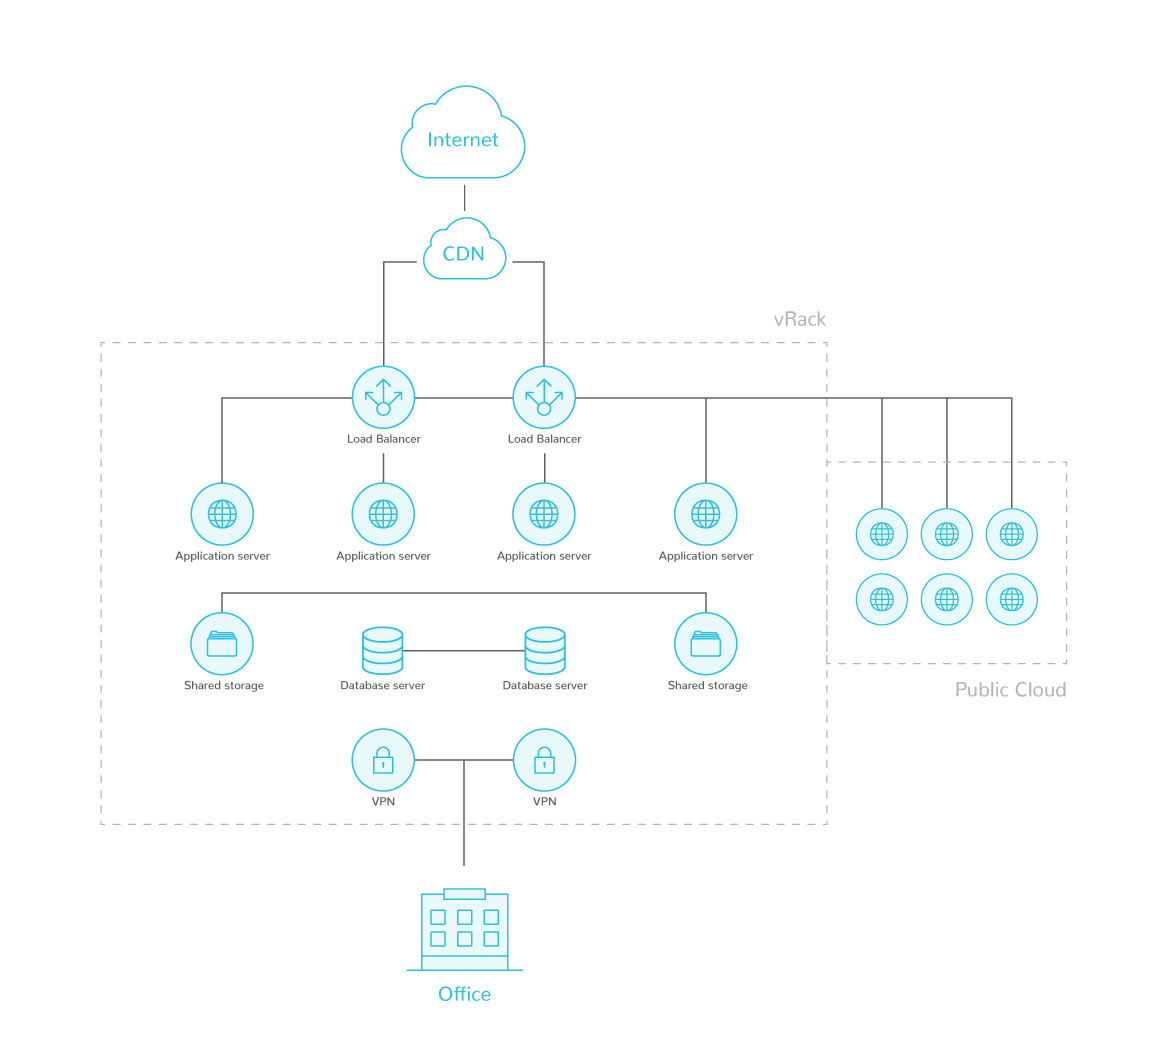 MDDV and OVH infrastructure